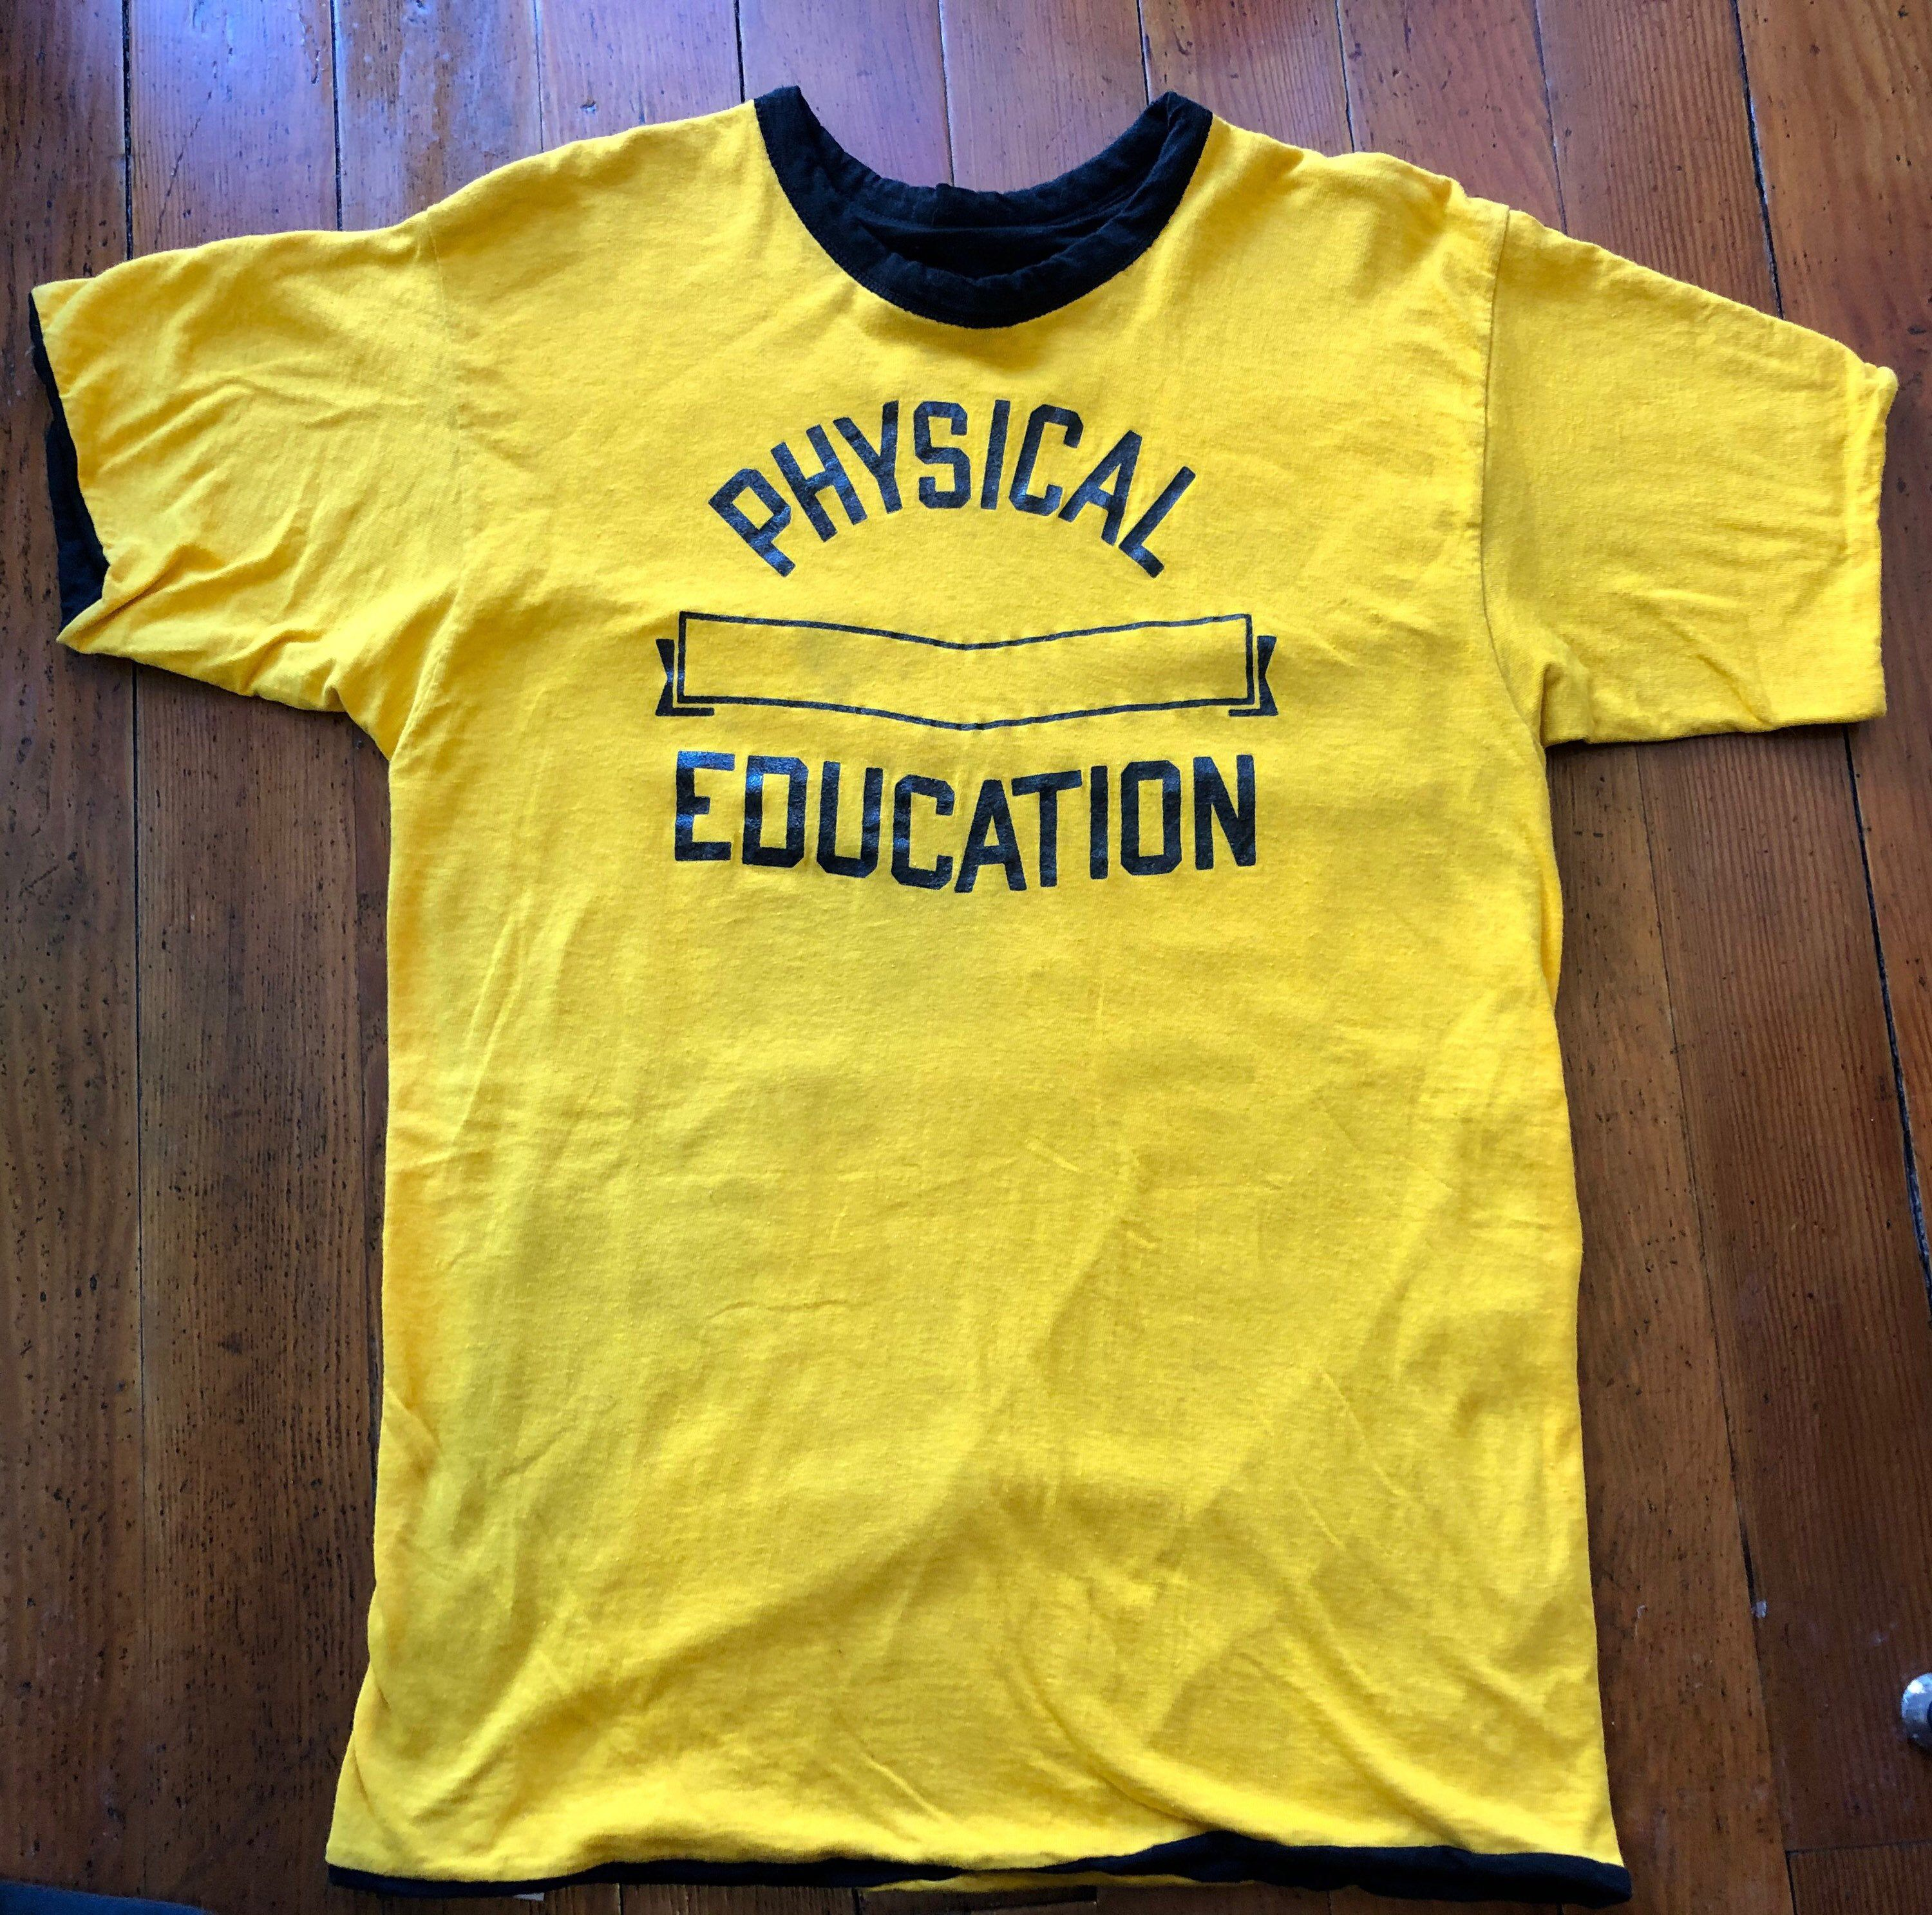 Vintage 70 S Champion Physical Education T Shirt 70 S Champion Gym Reversible Yellow T Shirt 70s Vintage Phy Ed Te In 2020 70s T Shirts Graphic Shirts Yellow T Shirt